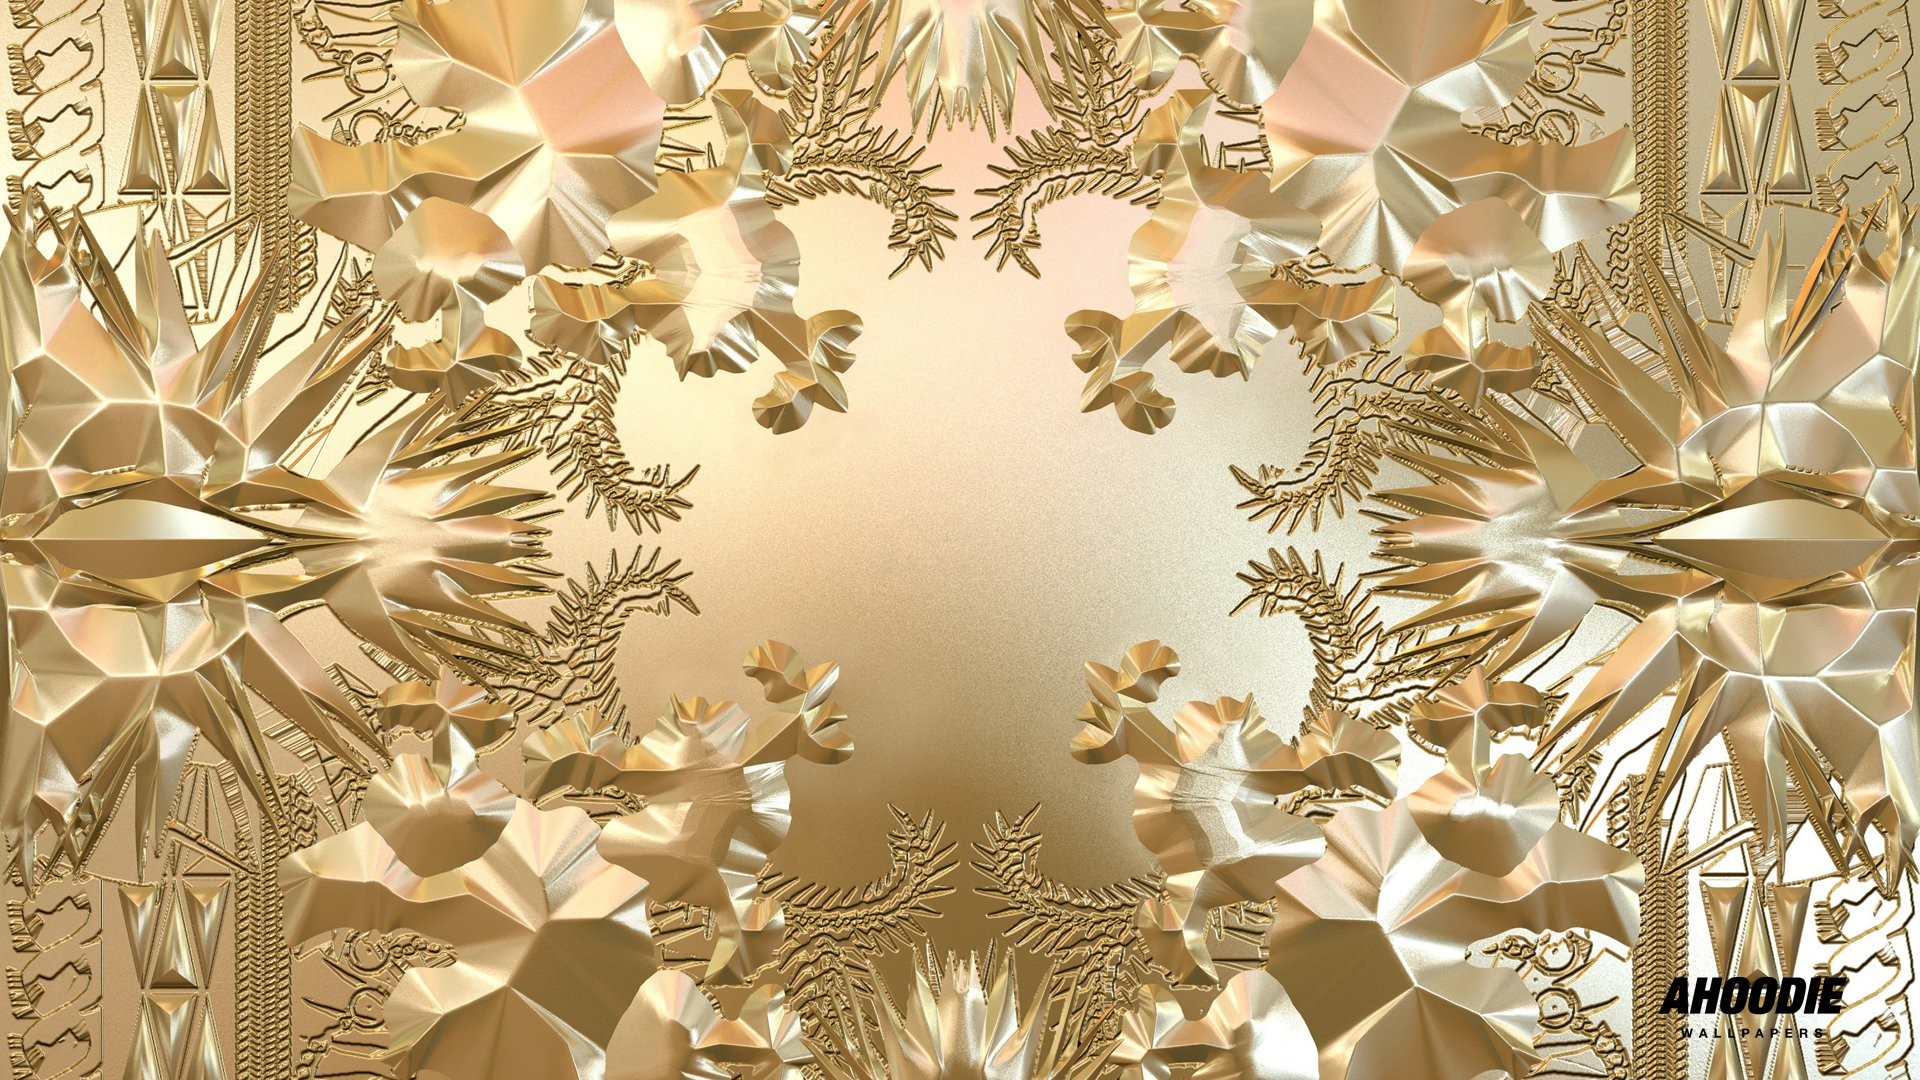 Kanye West Cover Watch The Throne …